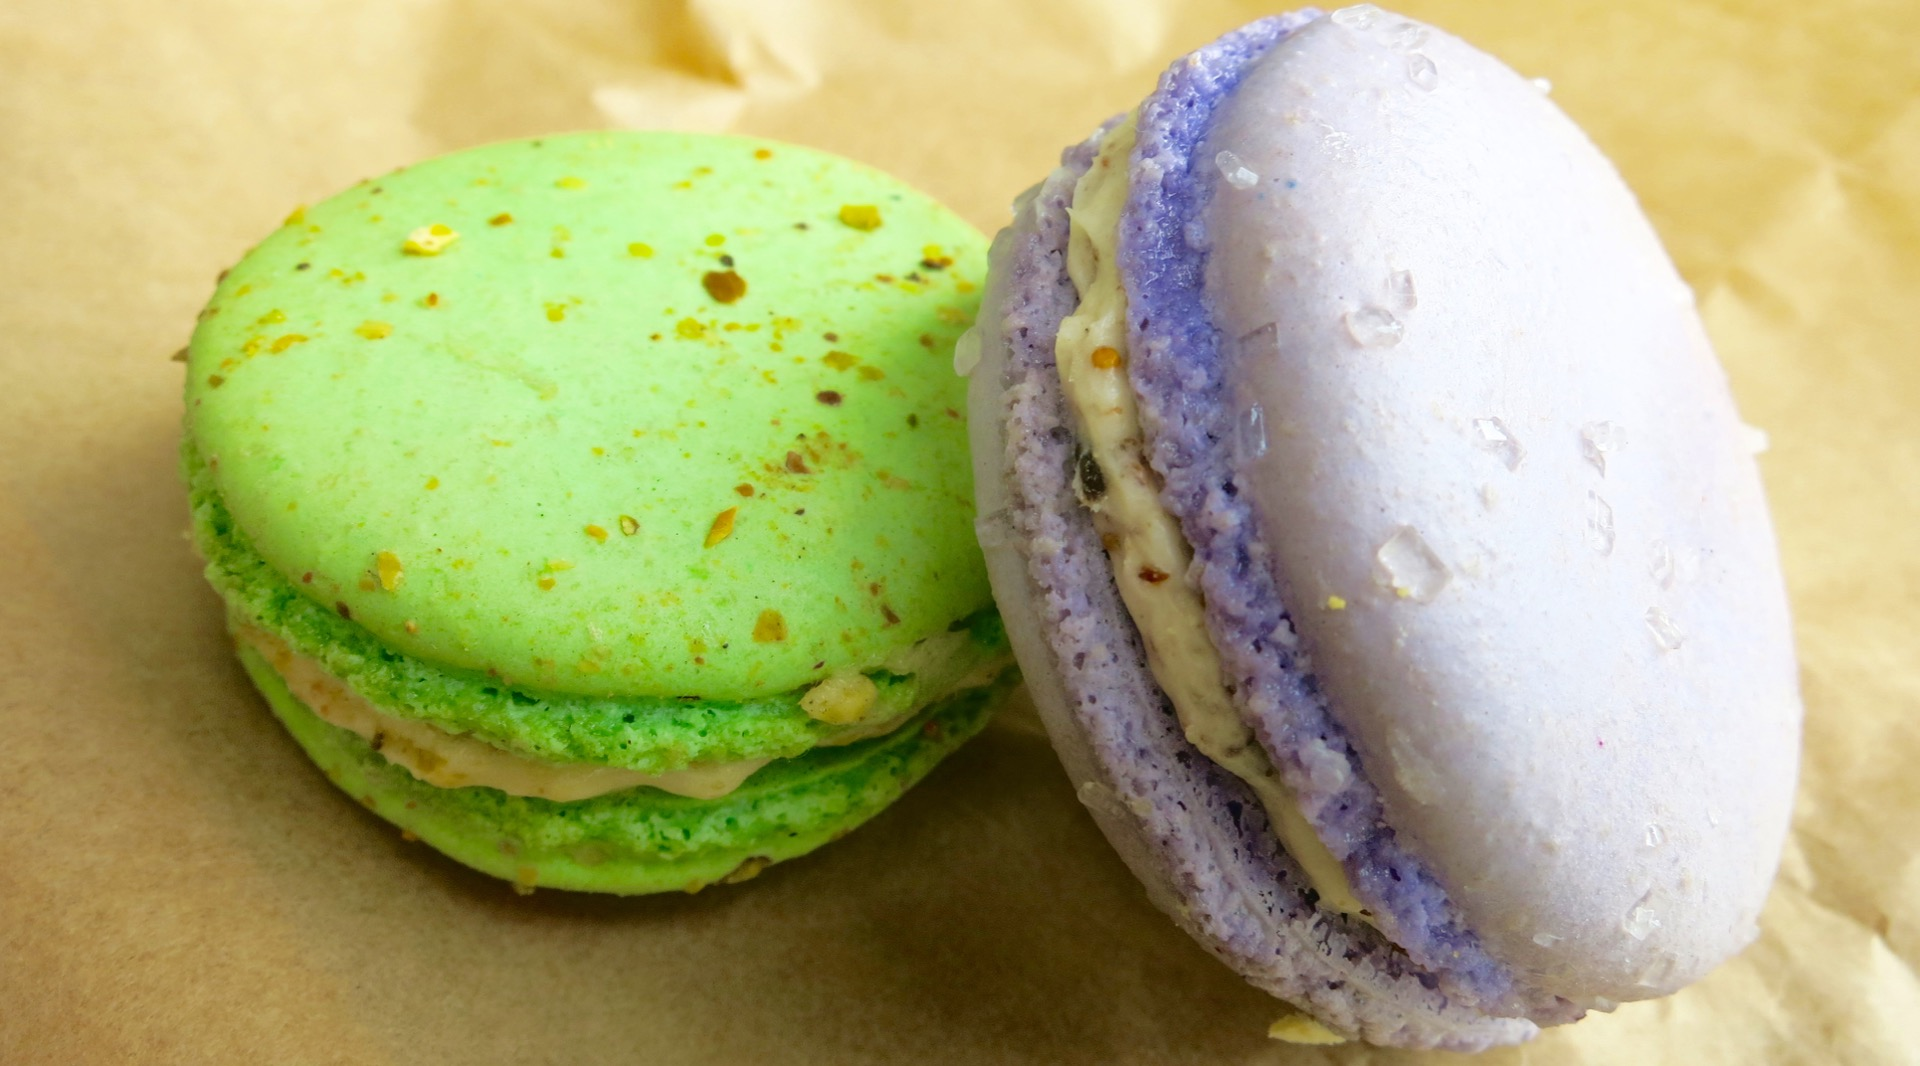 Pistachio and honey lavendar macarons from Feel Good Bakery in Alameda